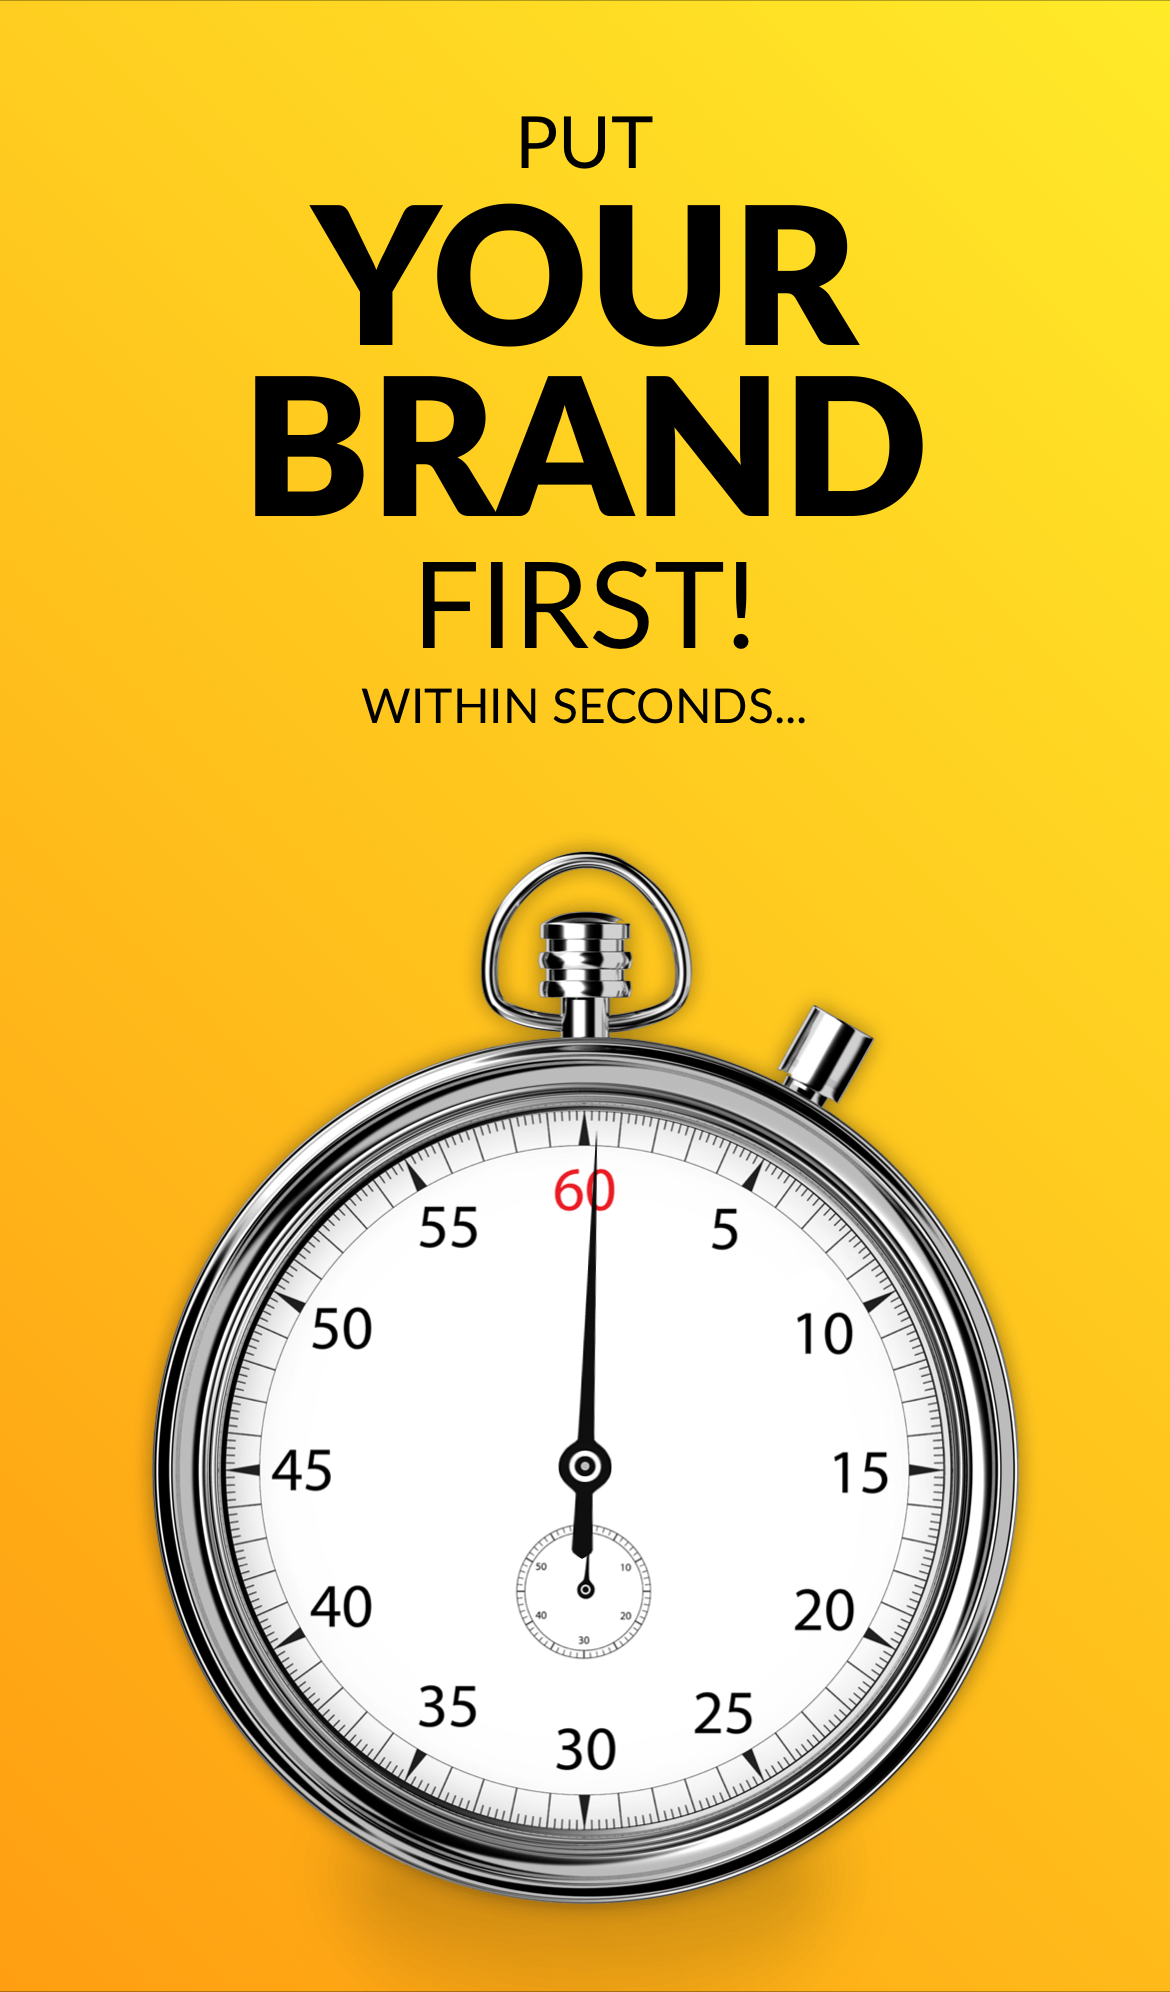 Your webAR creation should show your initial brand message within 1–2 seconds